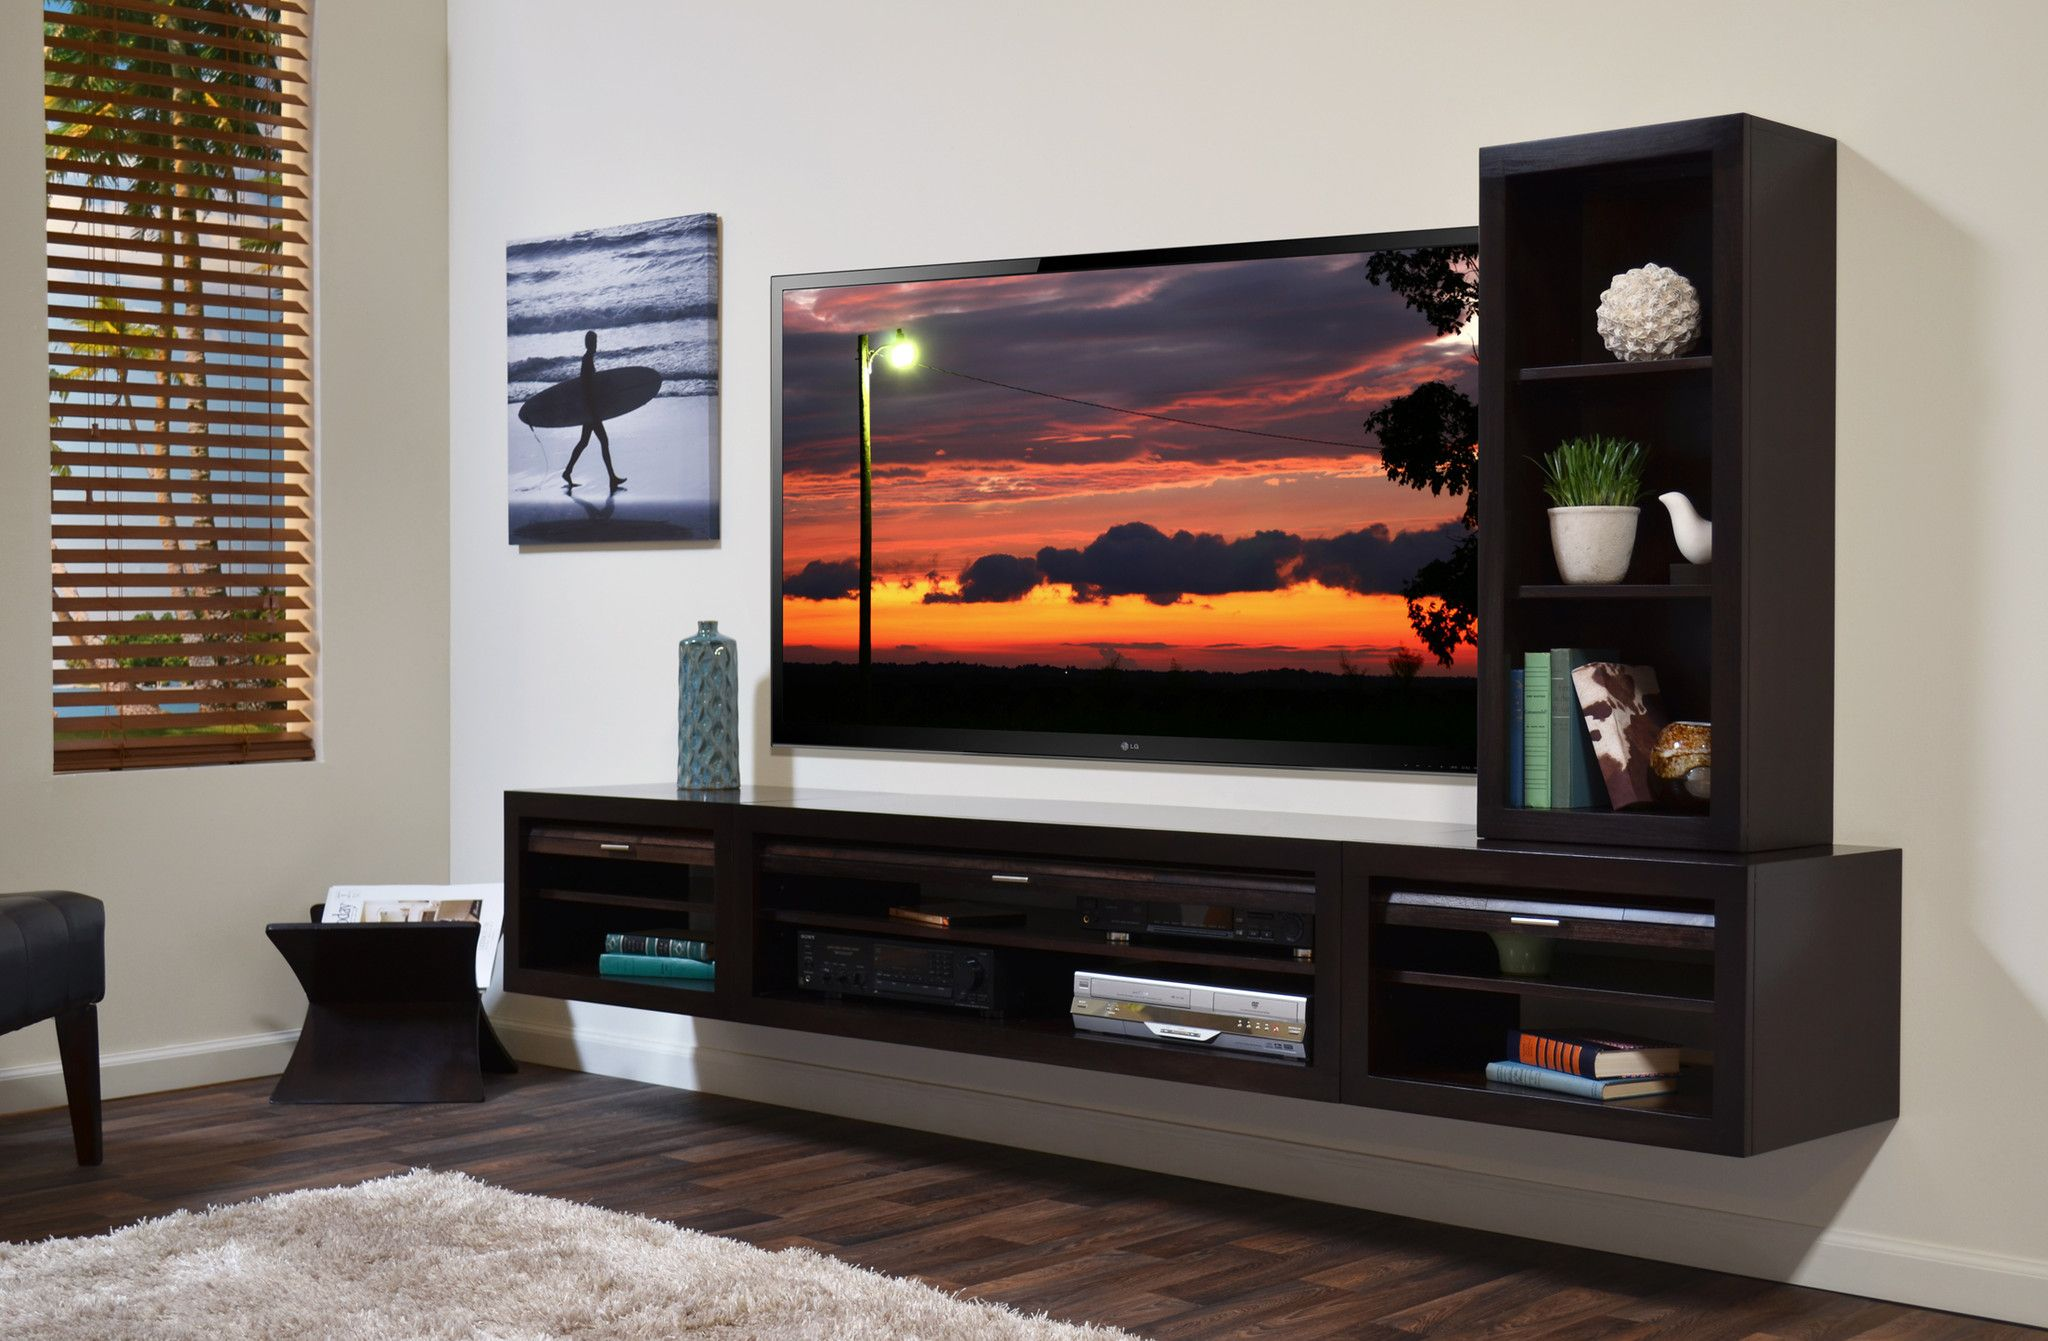 Entertainment Center Floating Shelves